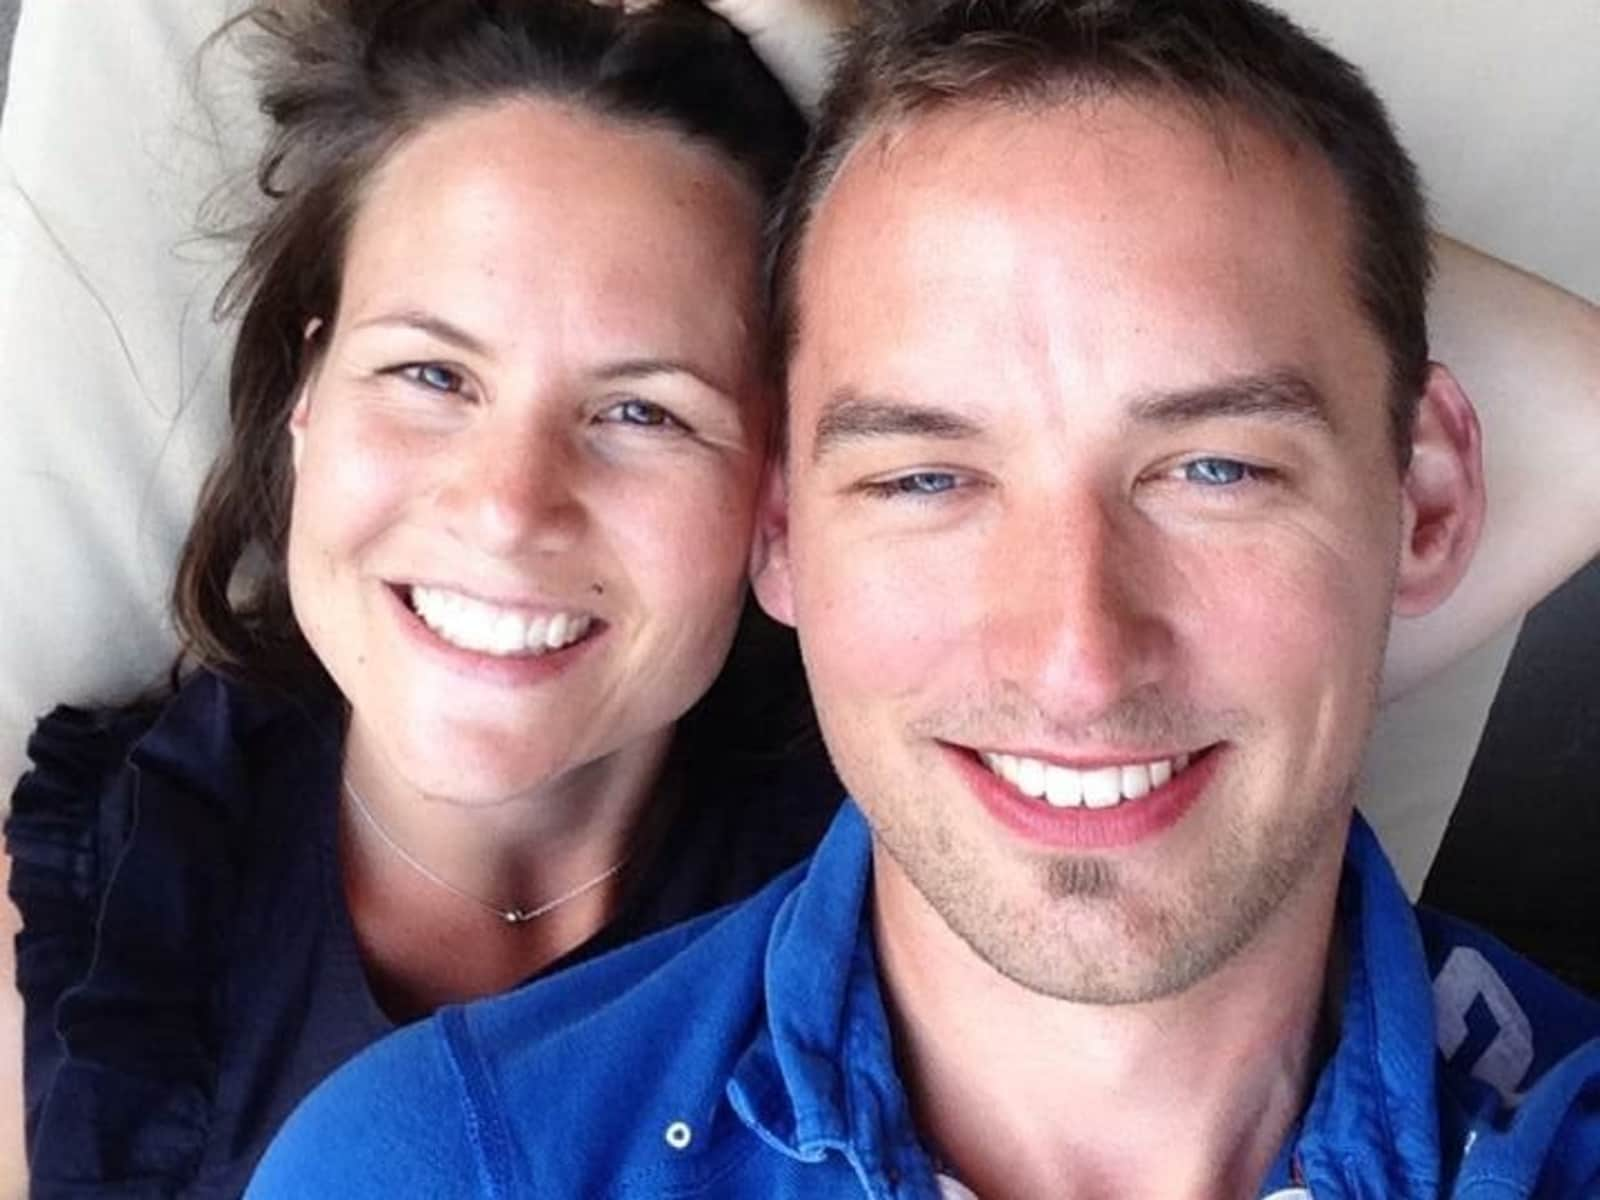 Julie & Ludovic from Vancouver, British Columbia, Canada